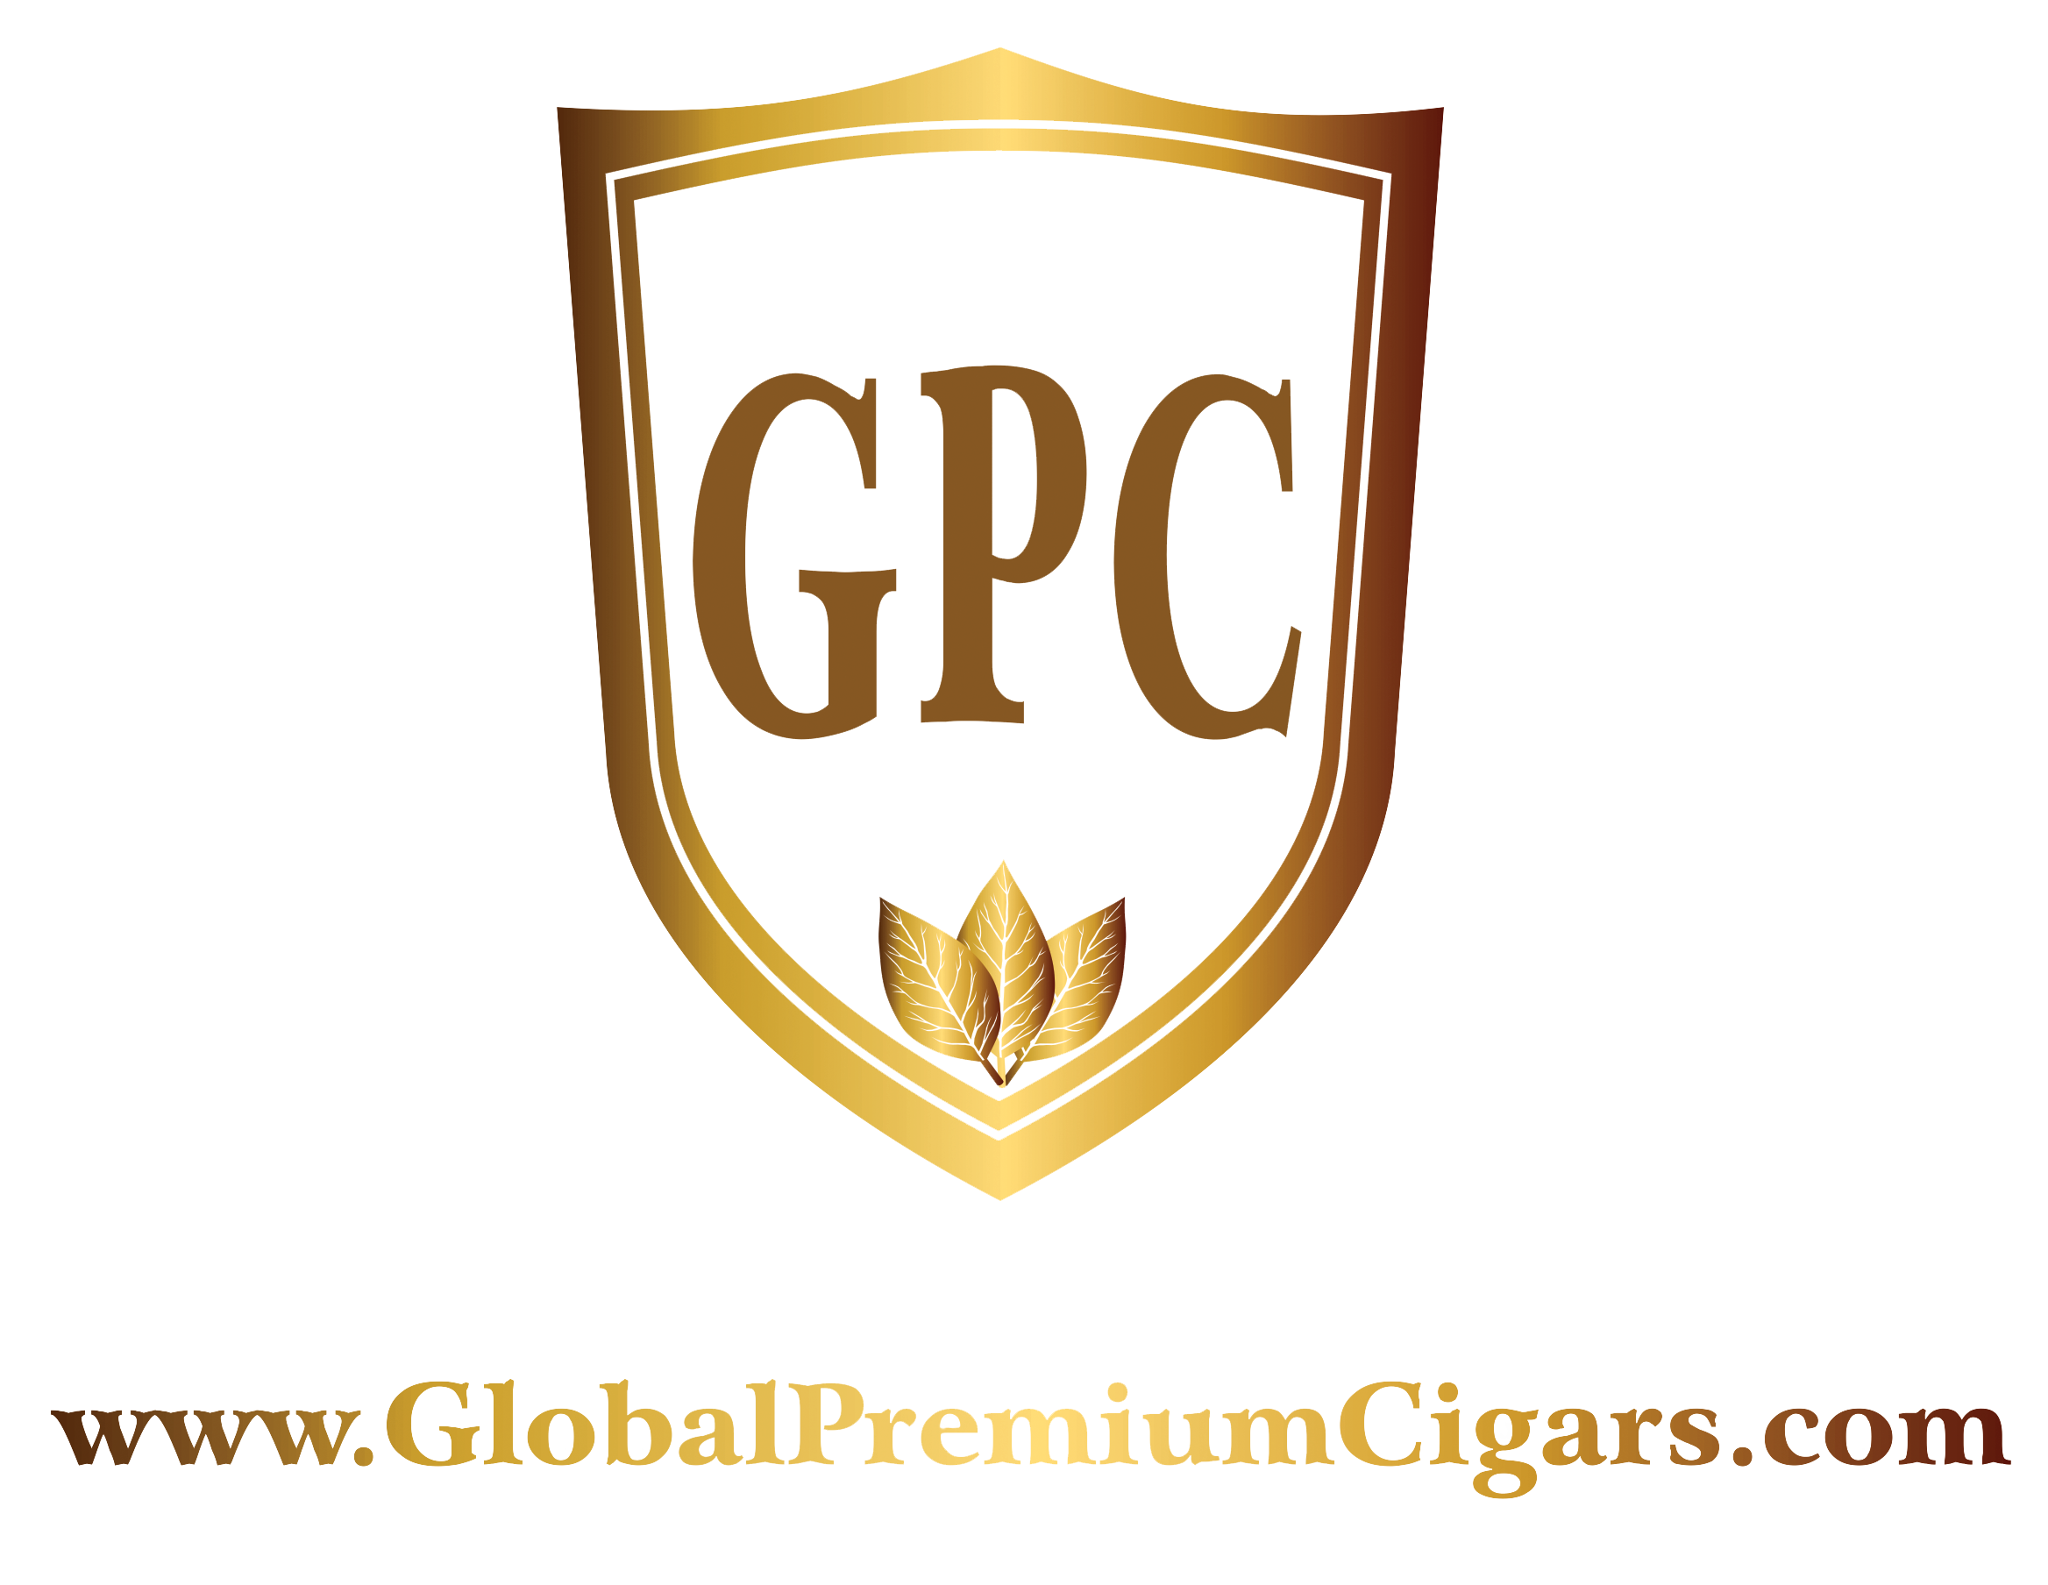 Cigar News: Global Premium Cigars to Release Cachitos at 2018 IPCPR